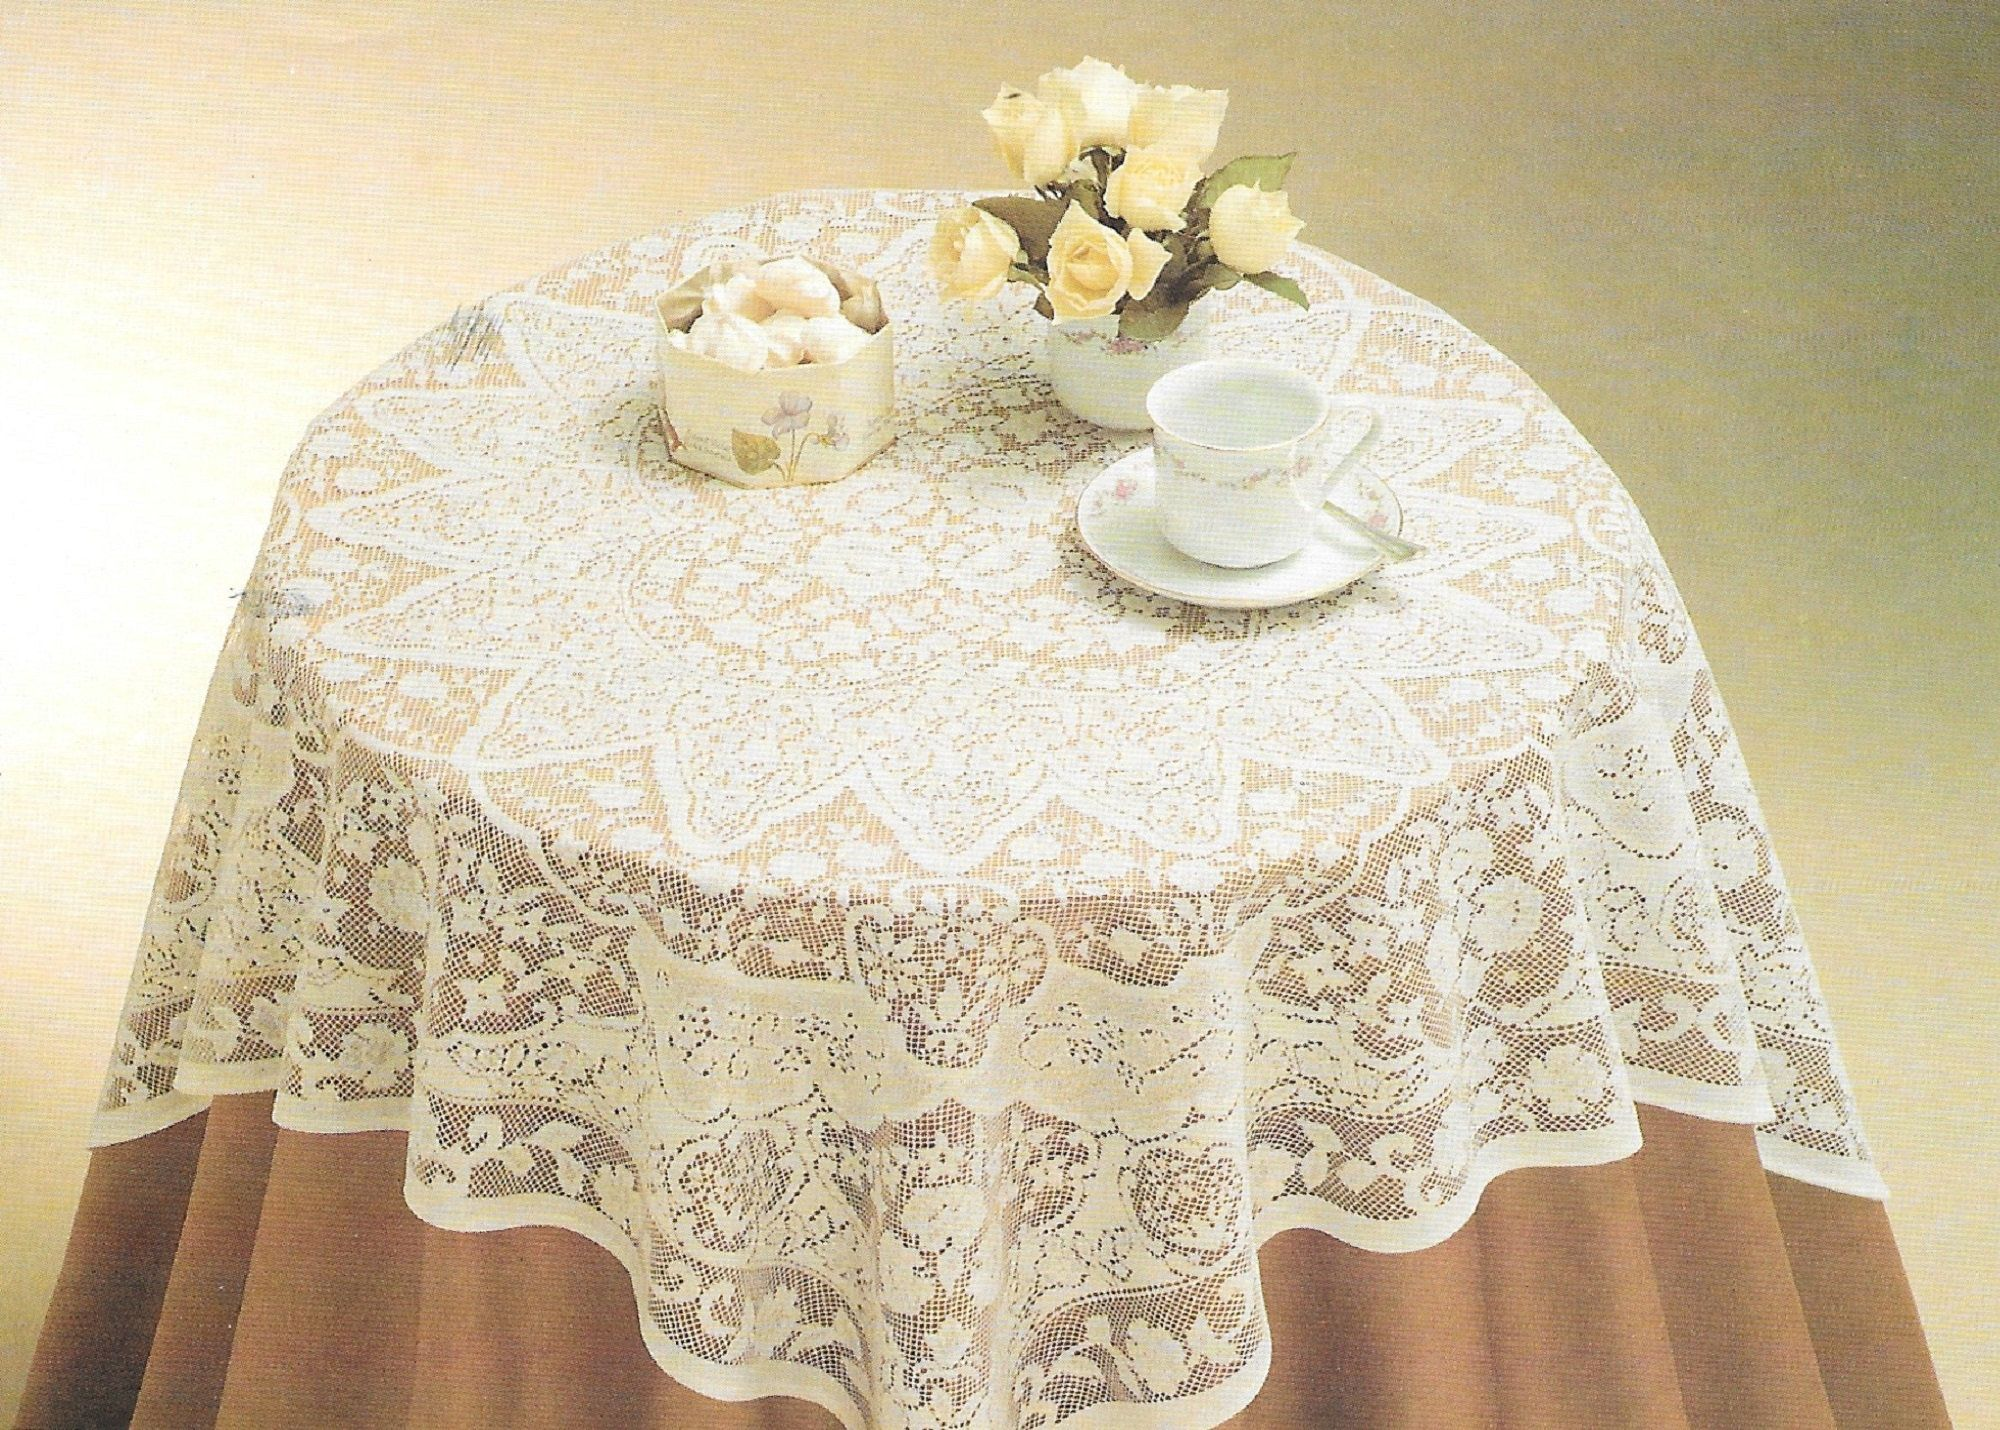 40 Inch Square Lace Small Table Topper Or Table Cover For Etsy In 2020 Lace Tablecloth Table Cloth Tablecloth Sizes